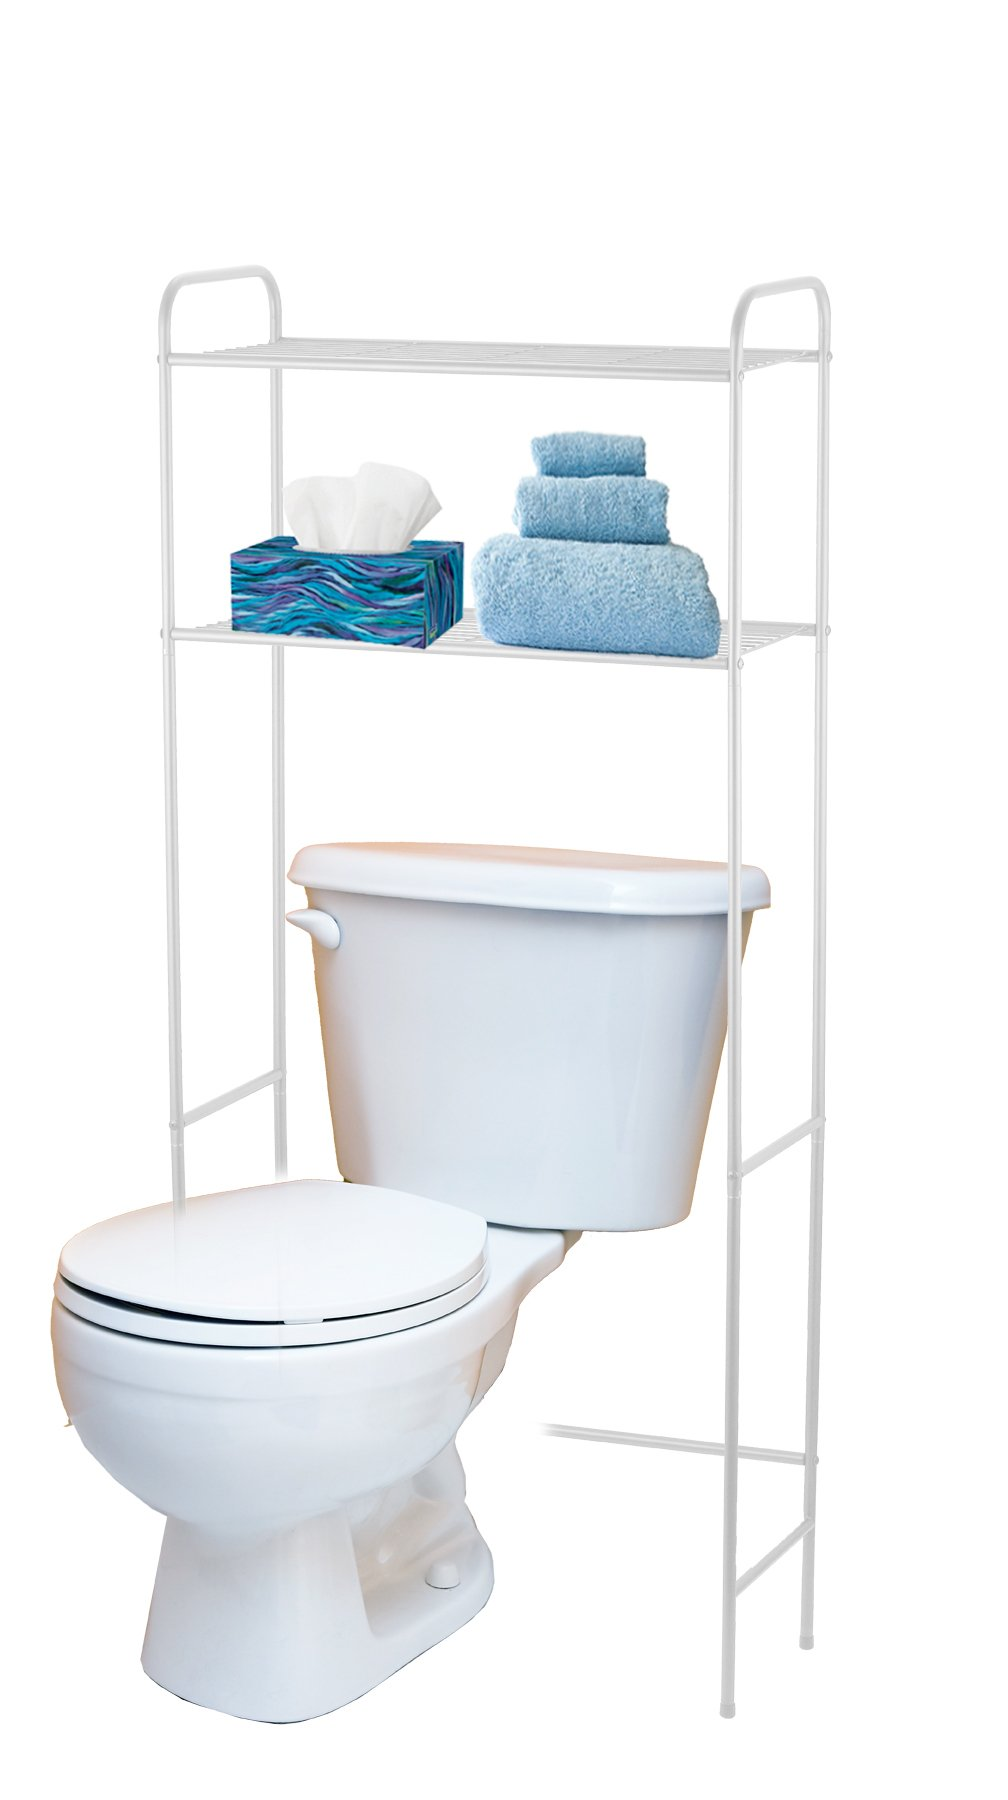 Home Basics 2 Tier Over The Toilet Bathroom Space Saver, Metal Bathroom Shelf Storage Unit, Anti-rust, White